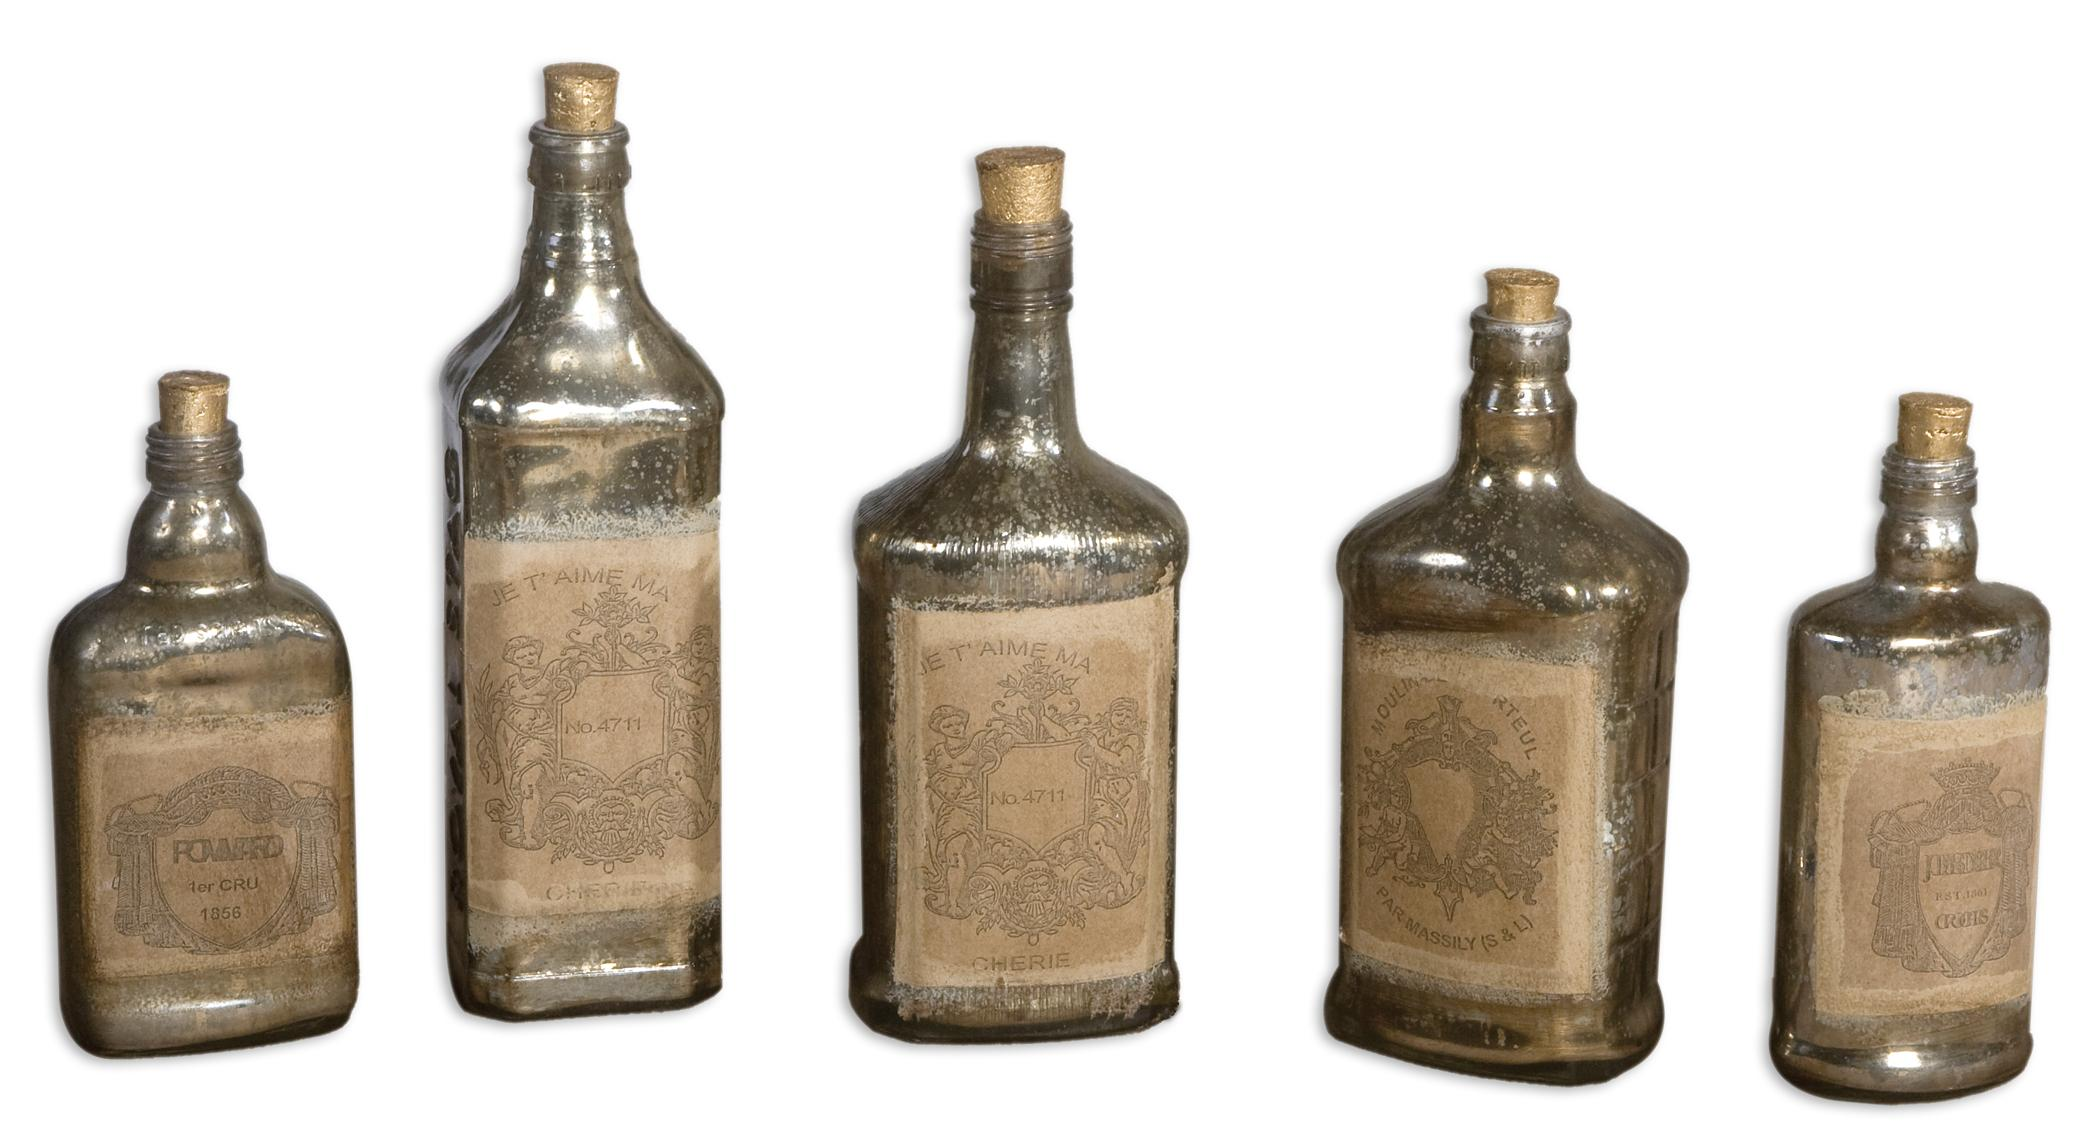 Uttermost Accessories Recycled Bottles Set of 5 - Item Number: 19754